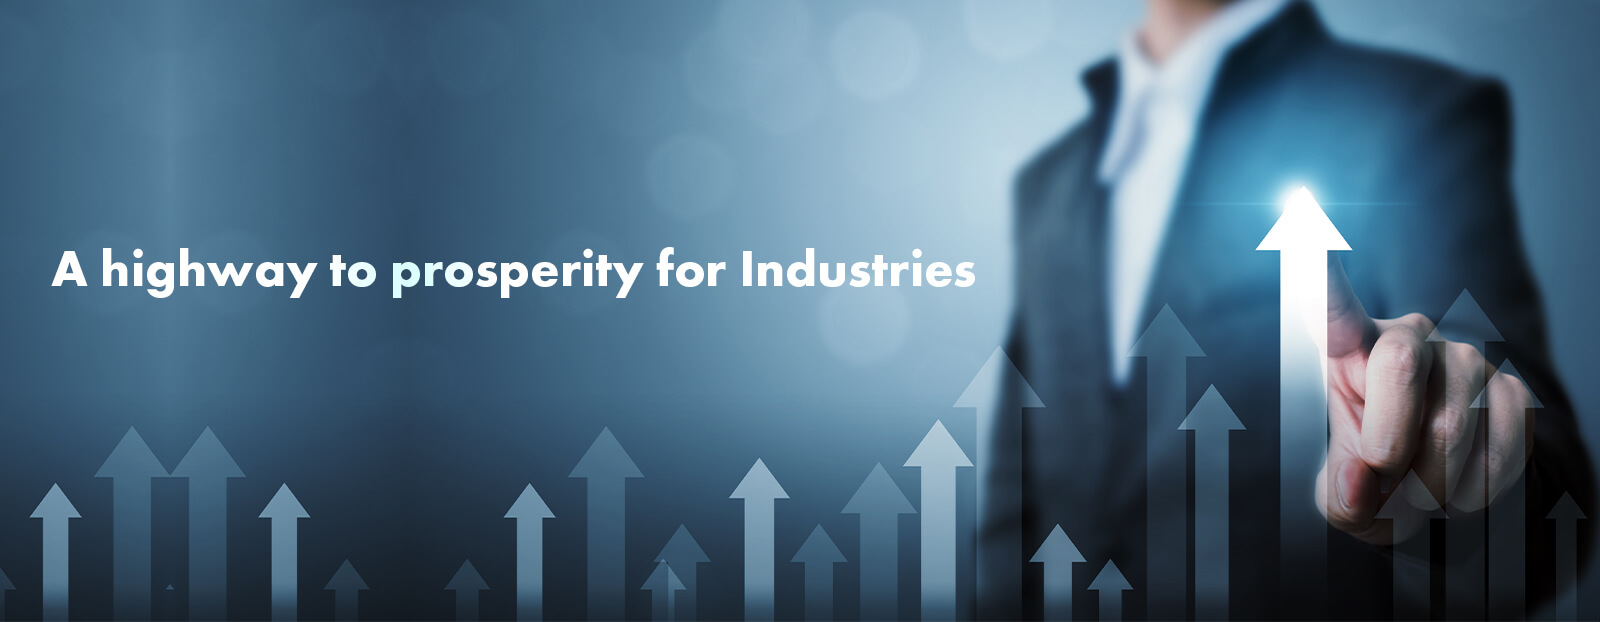 A Highway To Prosperity For Industries